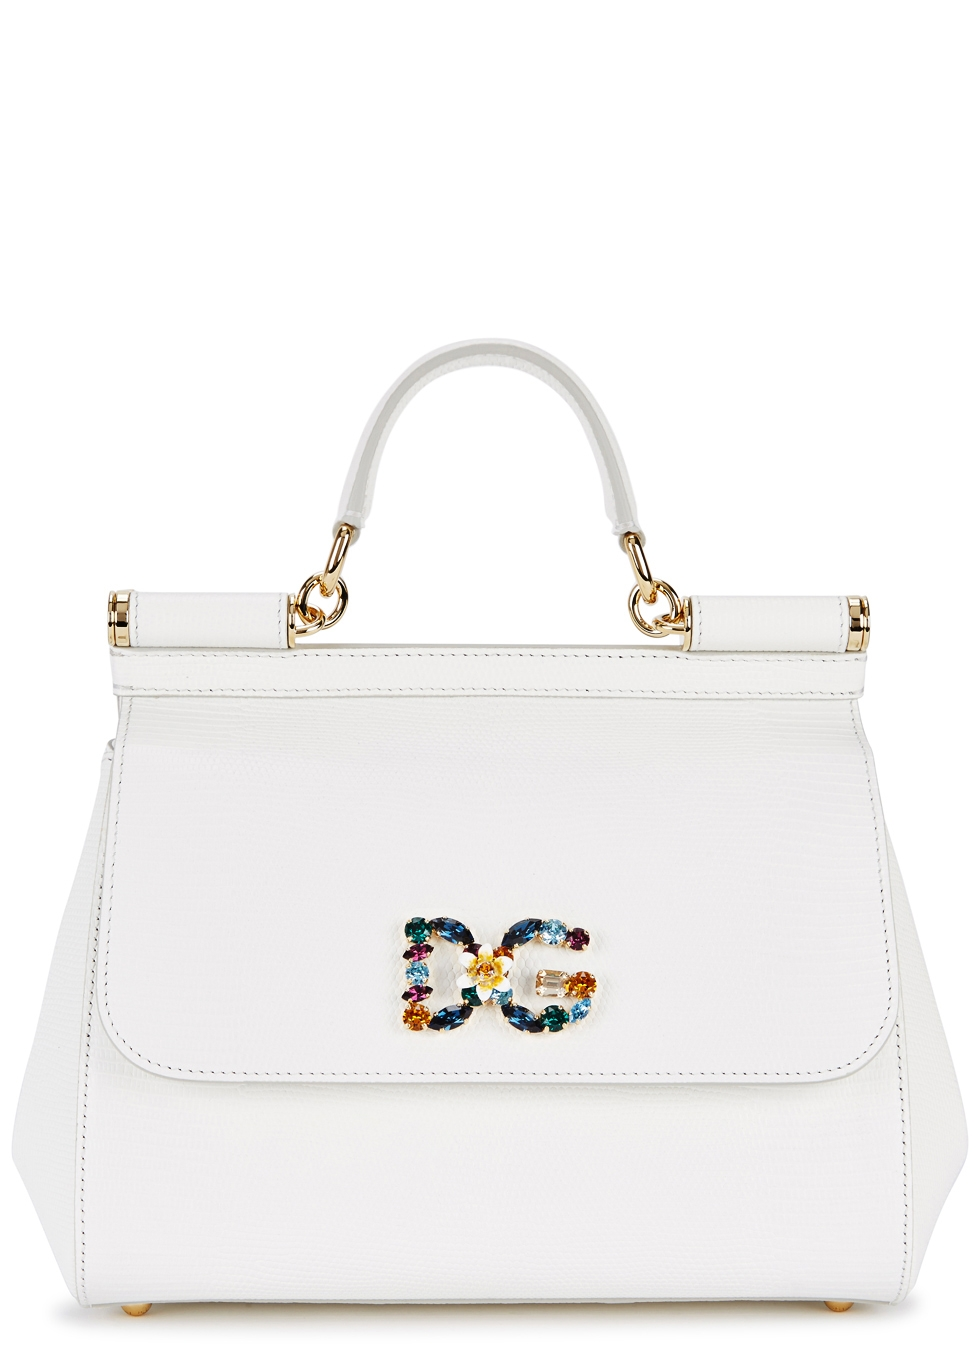 SICILY MEDIUM WHITE LEATHER TOTE